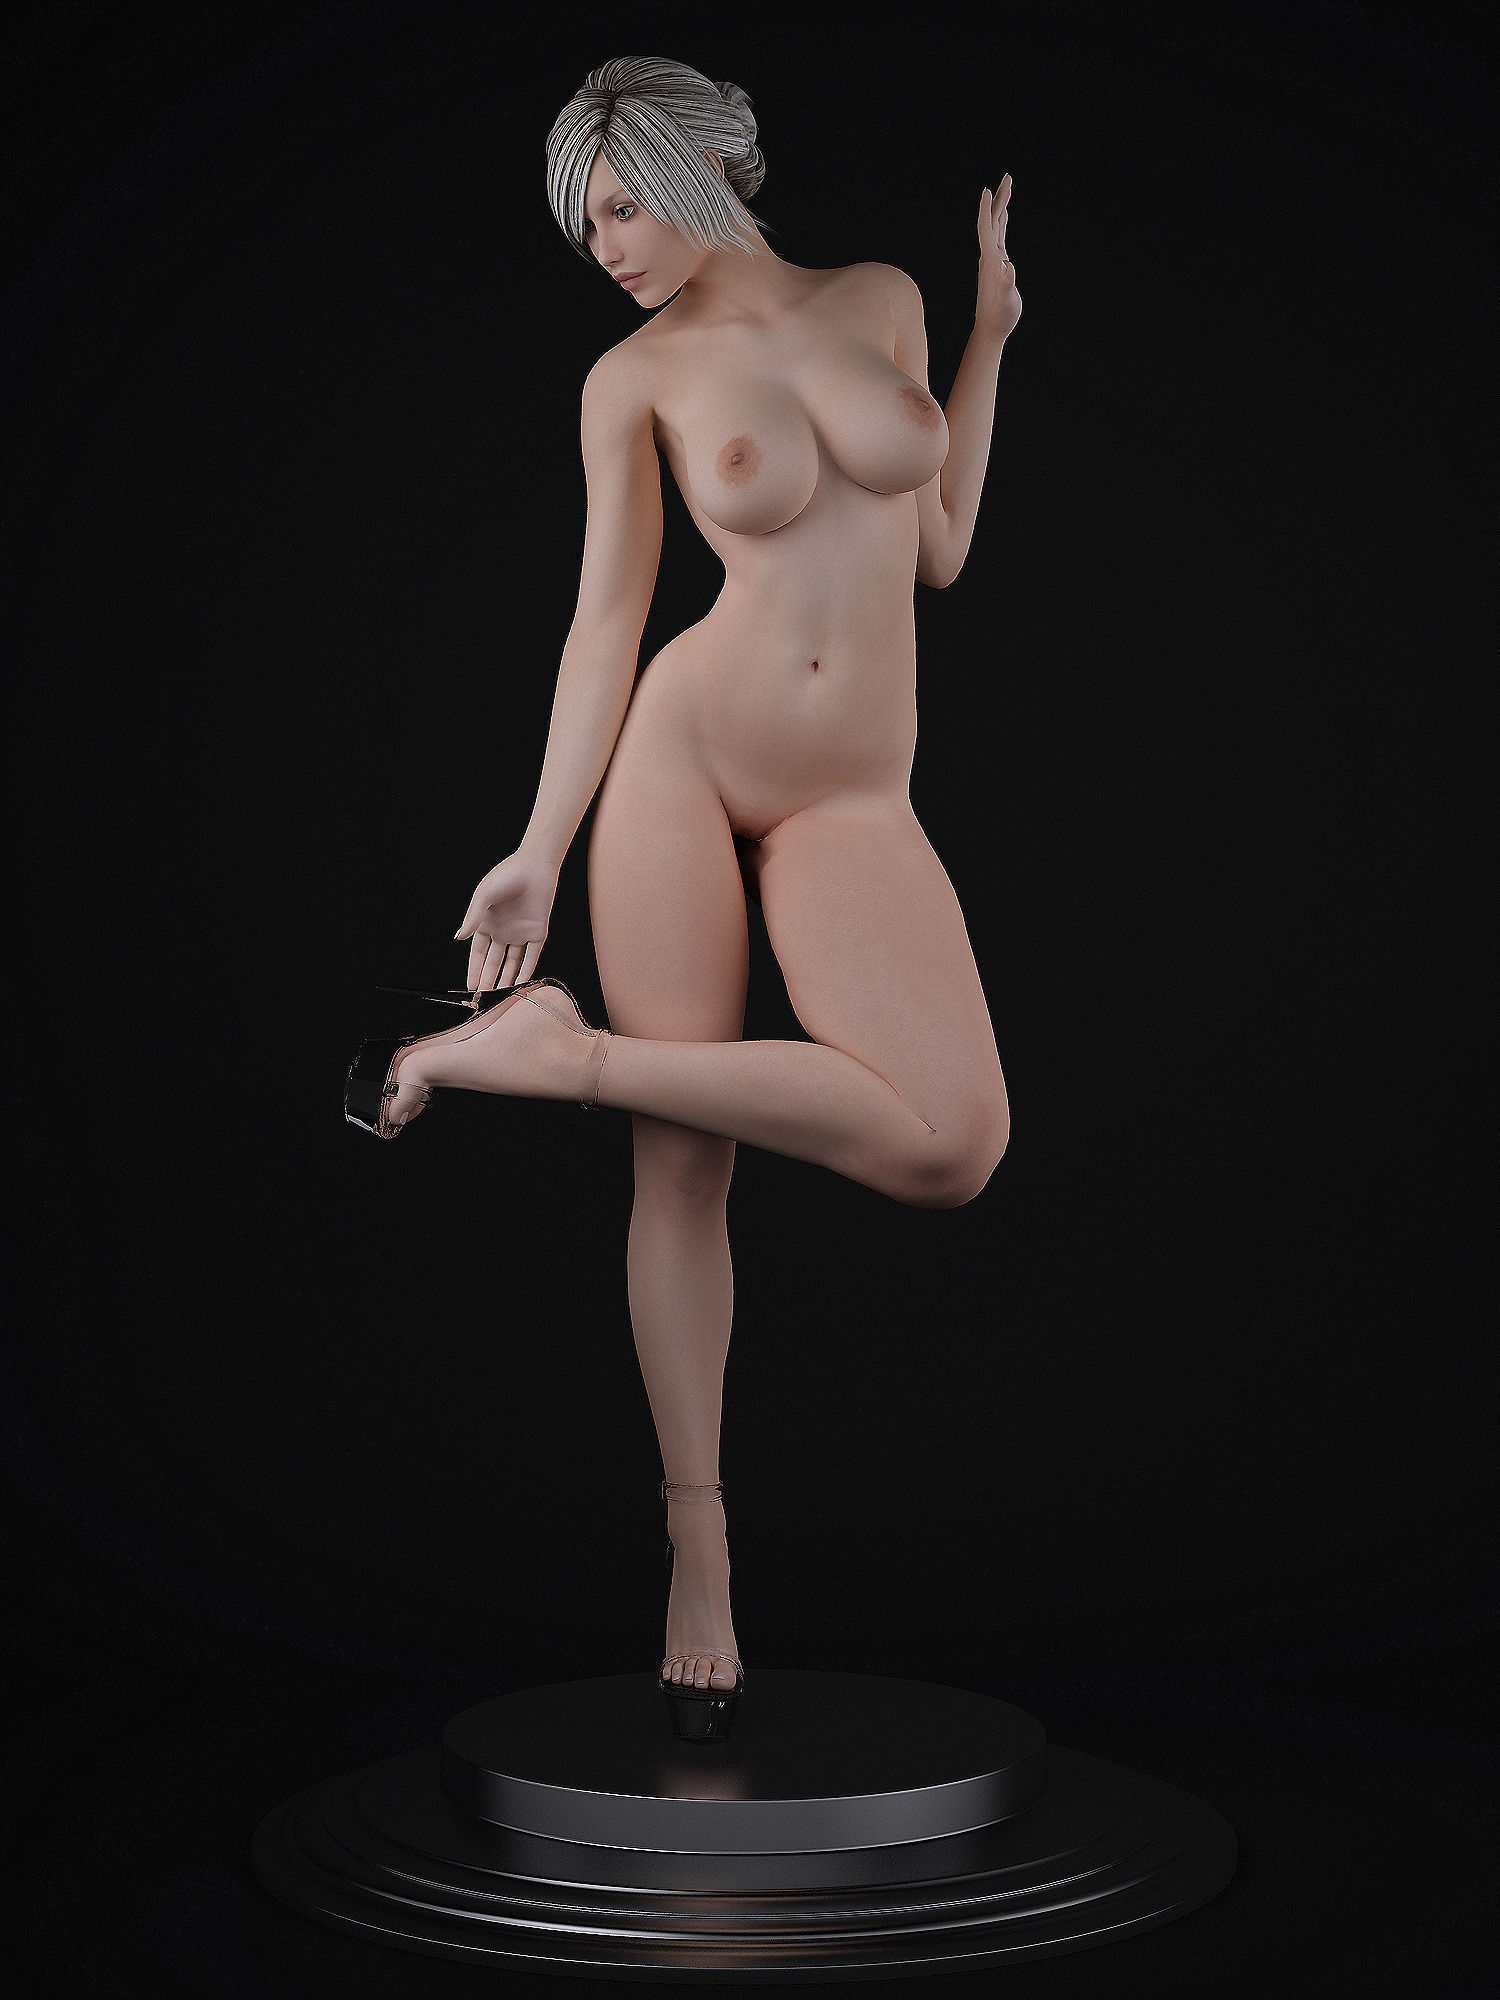 Nude 3 d female art adult pic